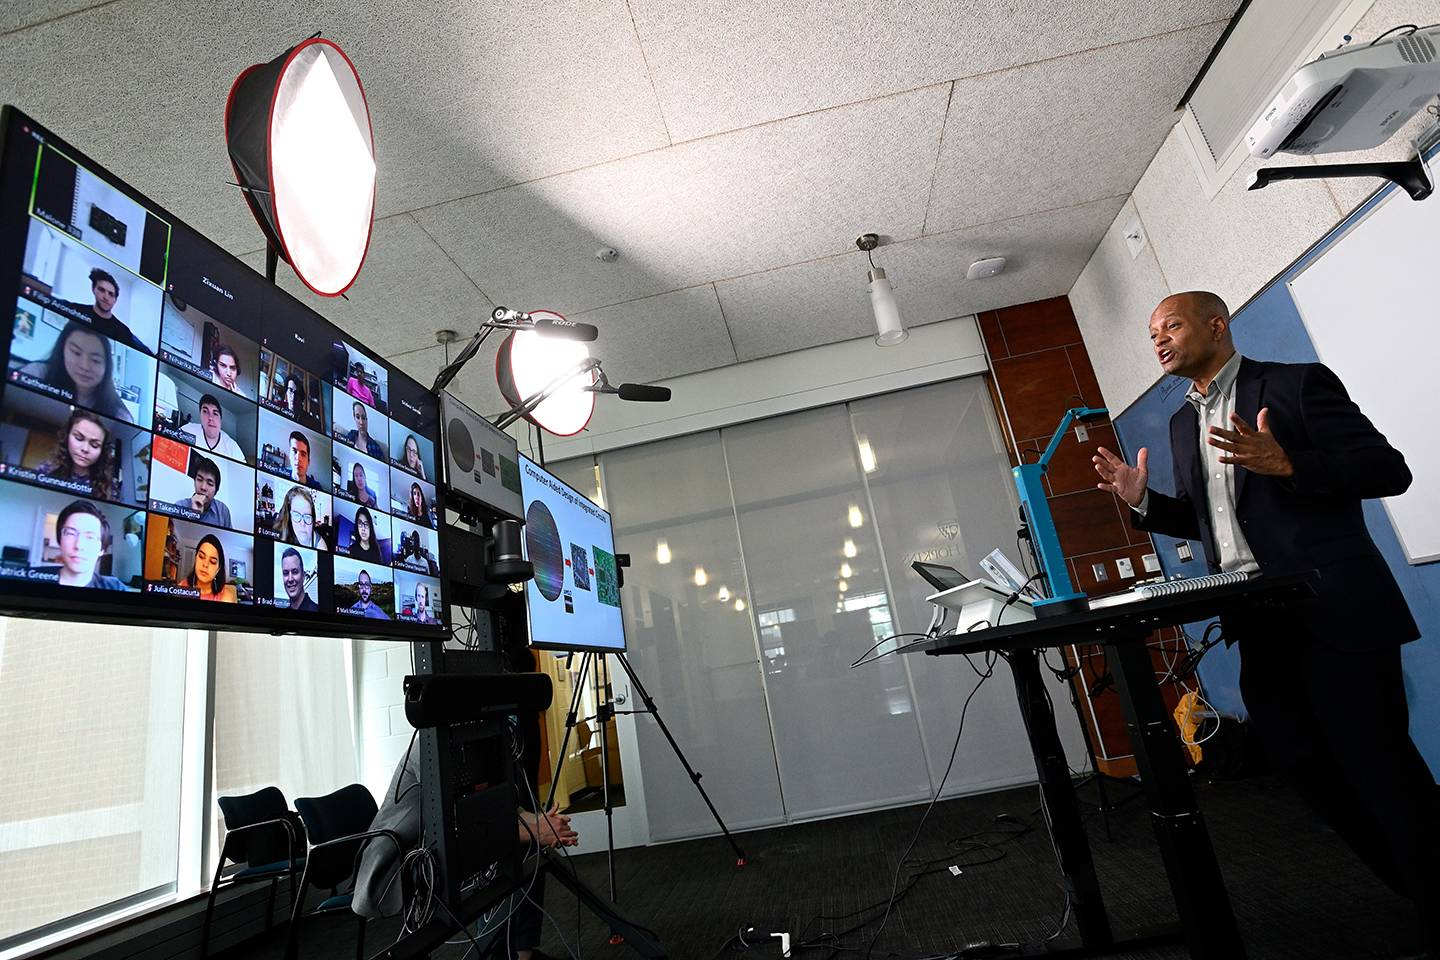 Ralph Etienne-Cummings leads a virtual class in new video studios specially designed for remote instruction